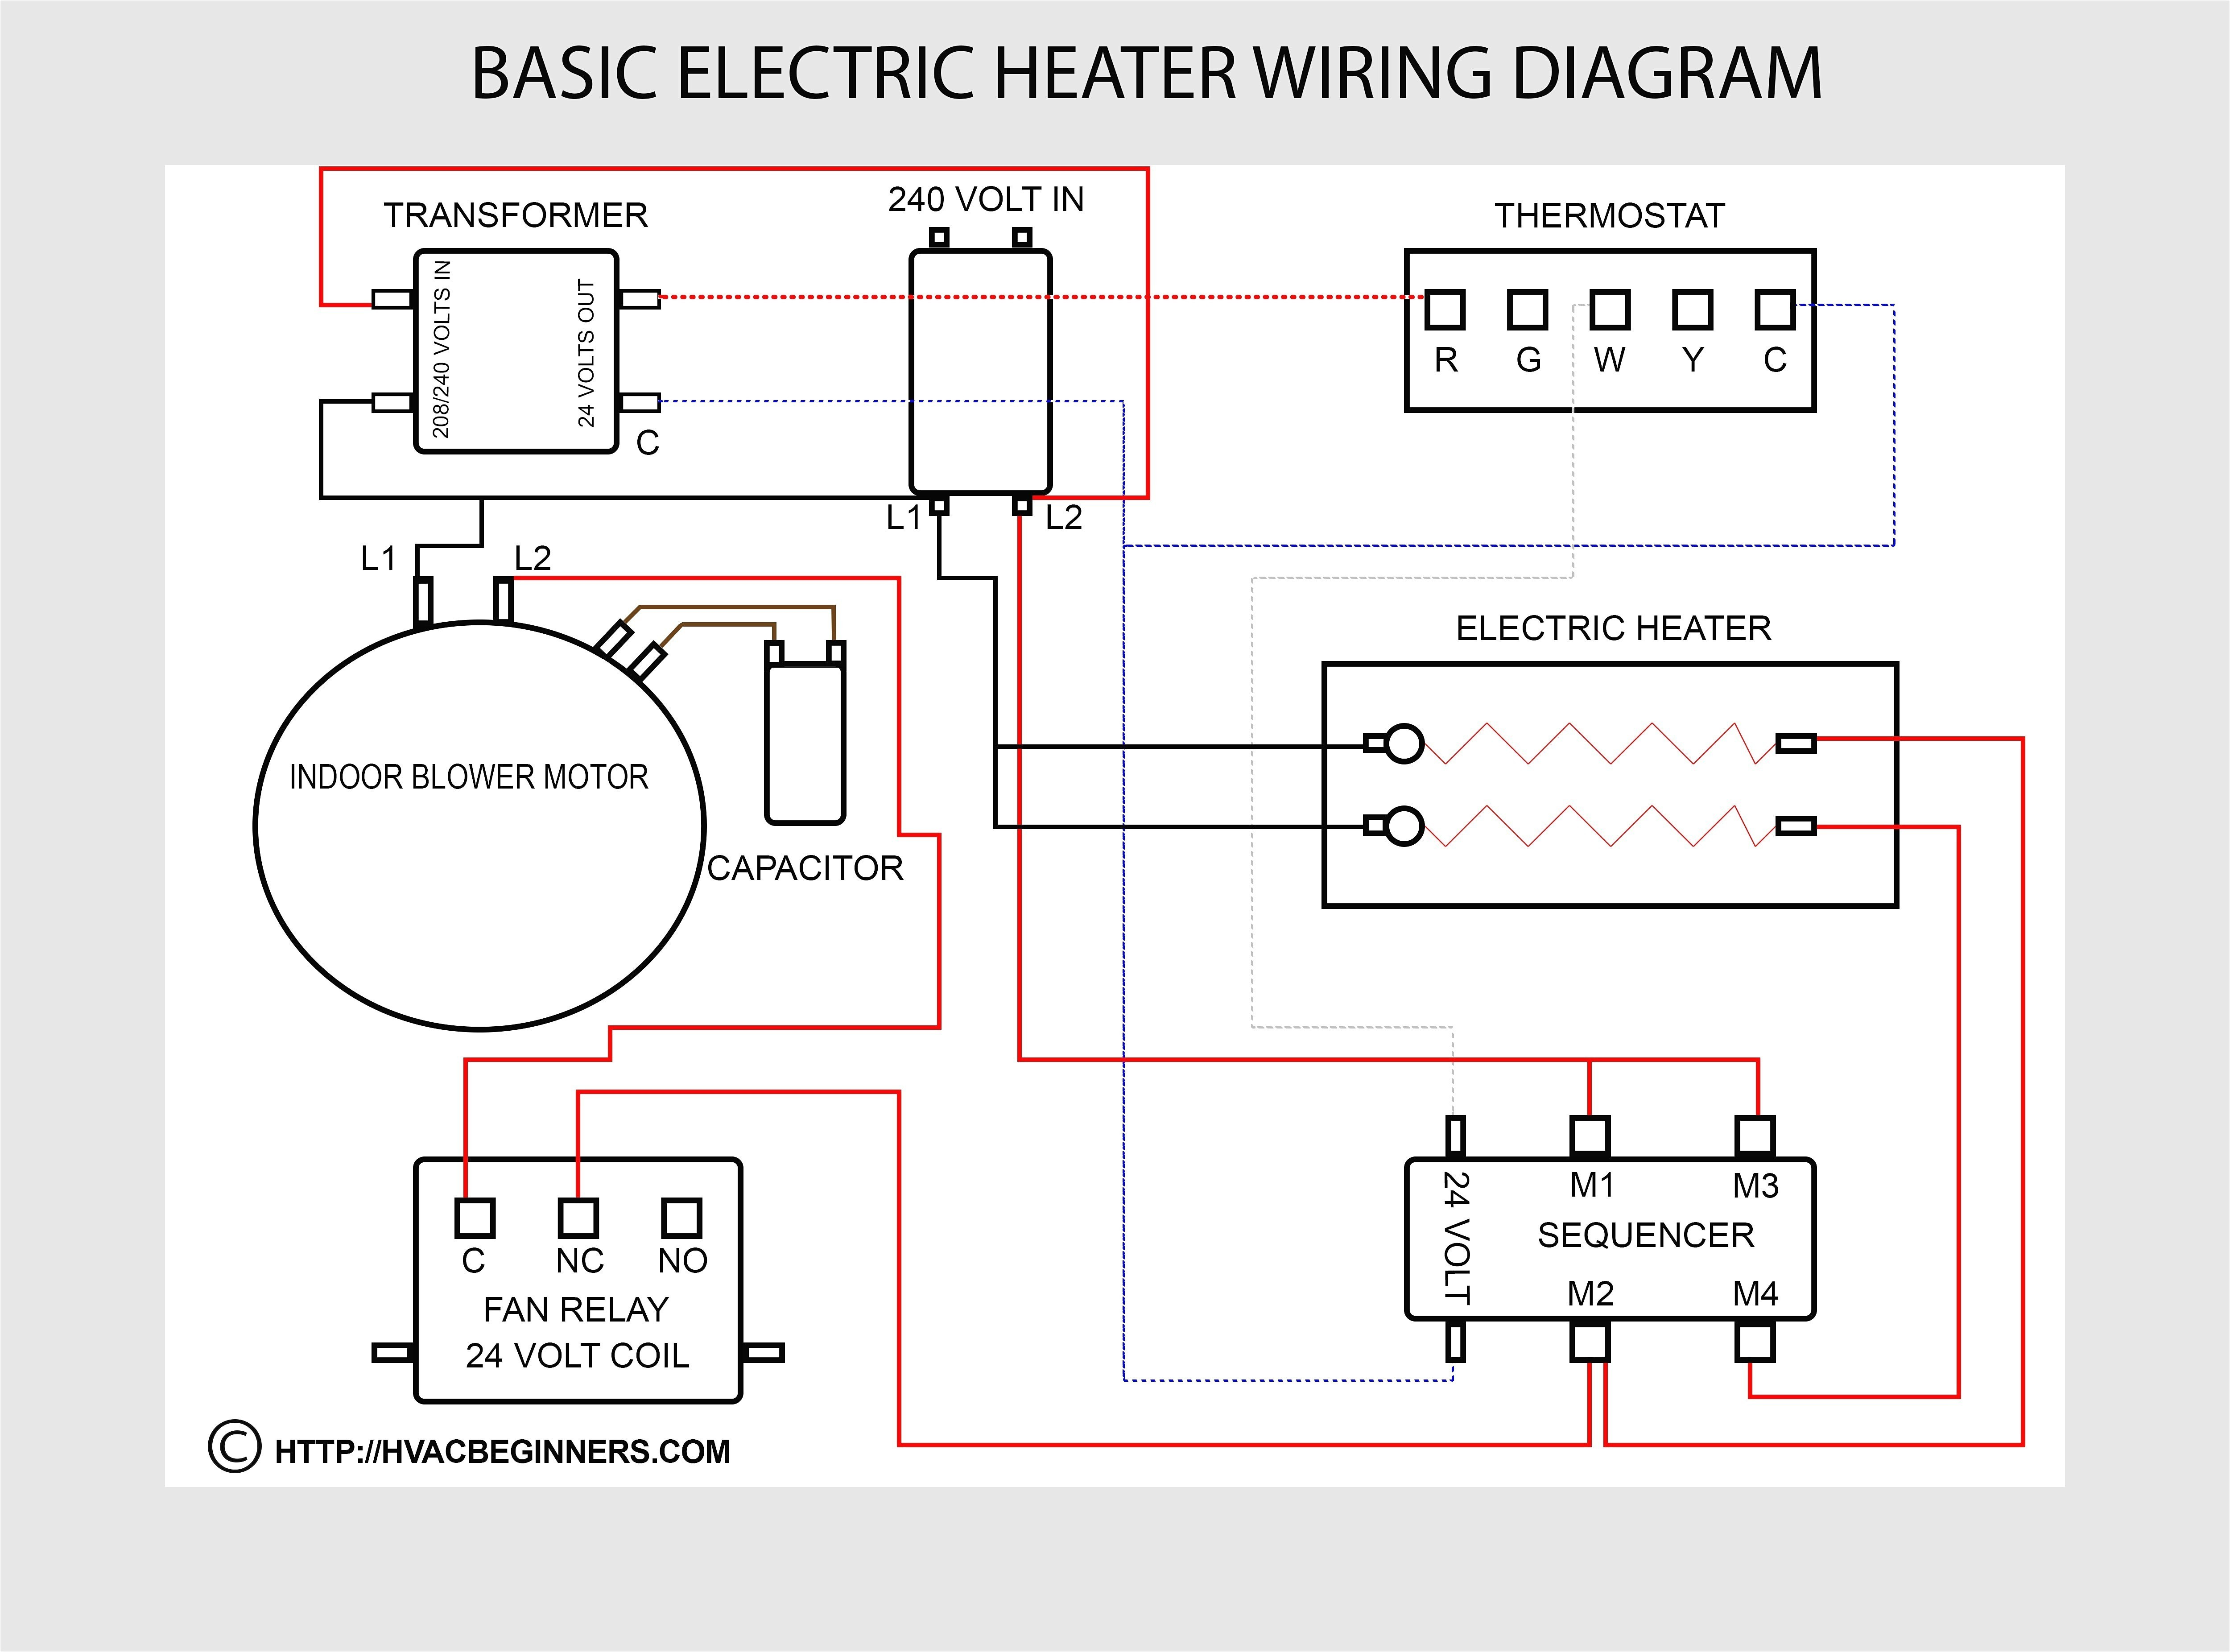 Window Switch Diagram Wiring Diagram Air Conditioner Inverter New Carrier Window Type Of Window Switch Diagram E Light Two Switches Wiring Diagrams Reference Peerless Light